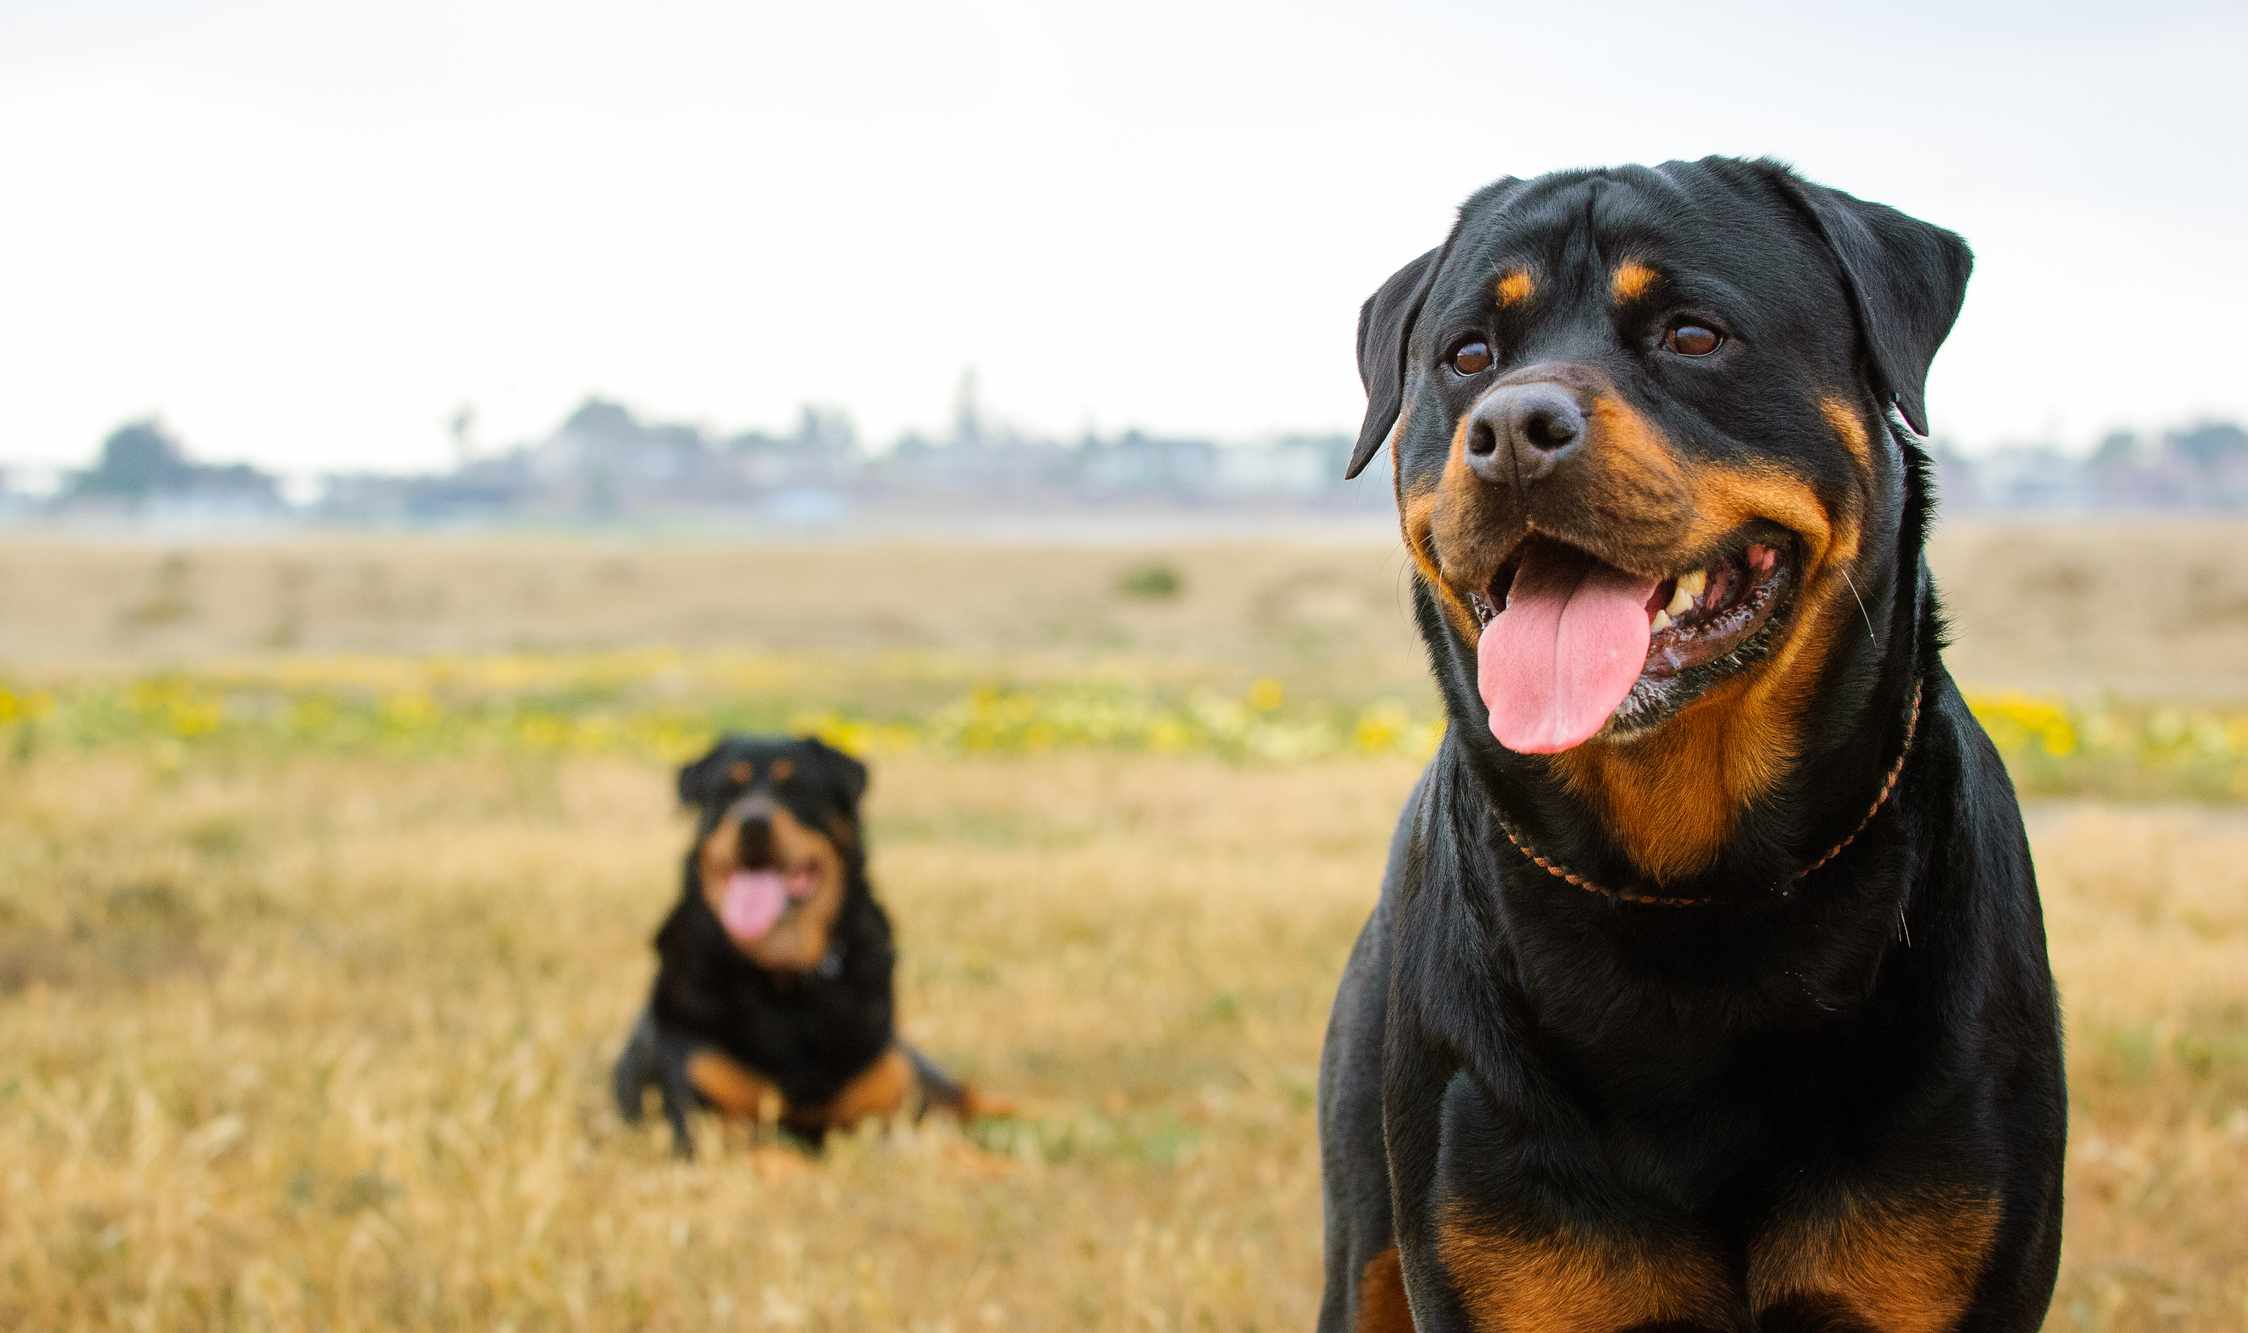 pair of rottweilers in a field sitting with tongues out